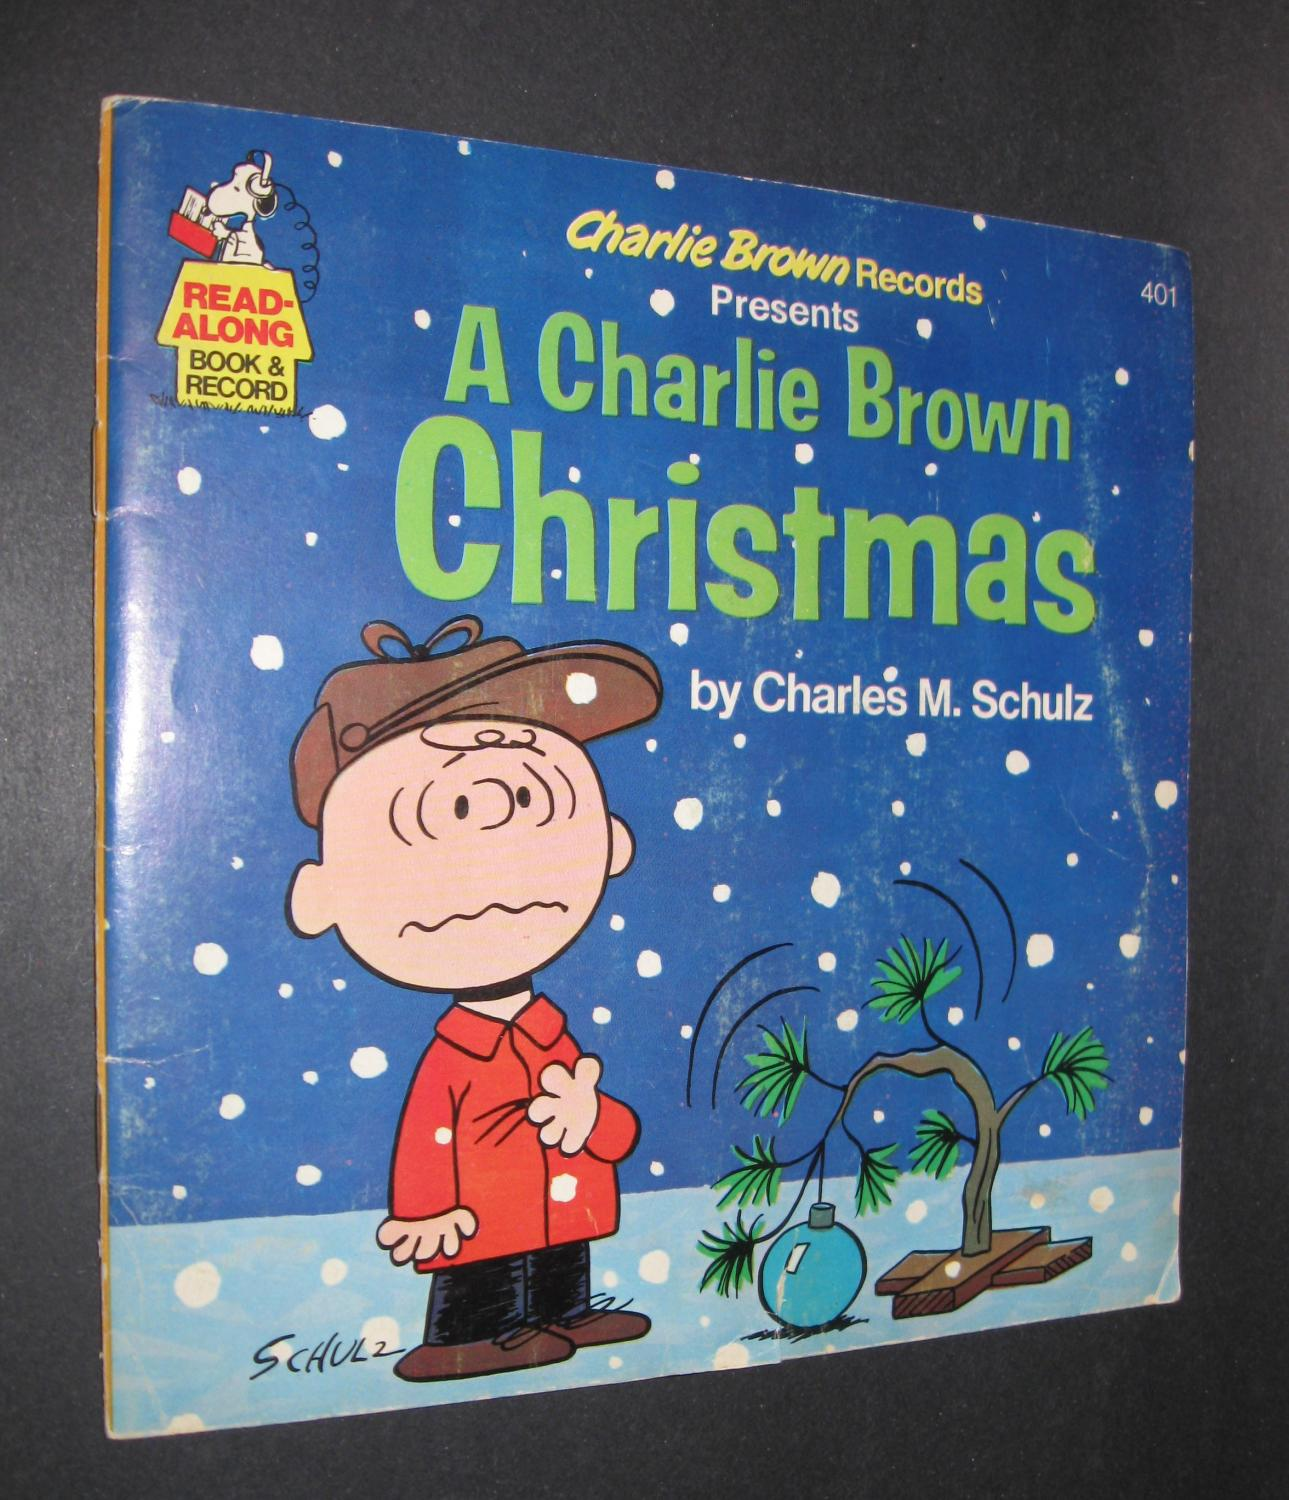 A Charlie Brown Christmas Book.A Charlie Brown Christmas Read Along Book